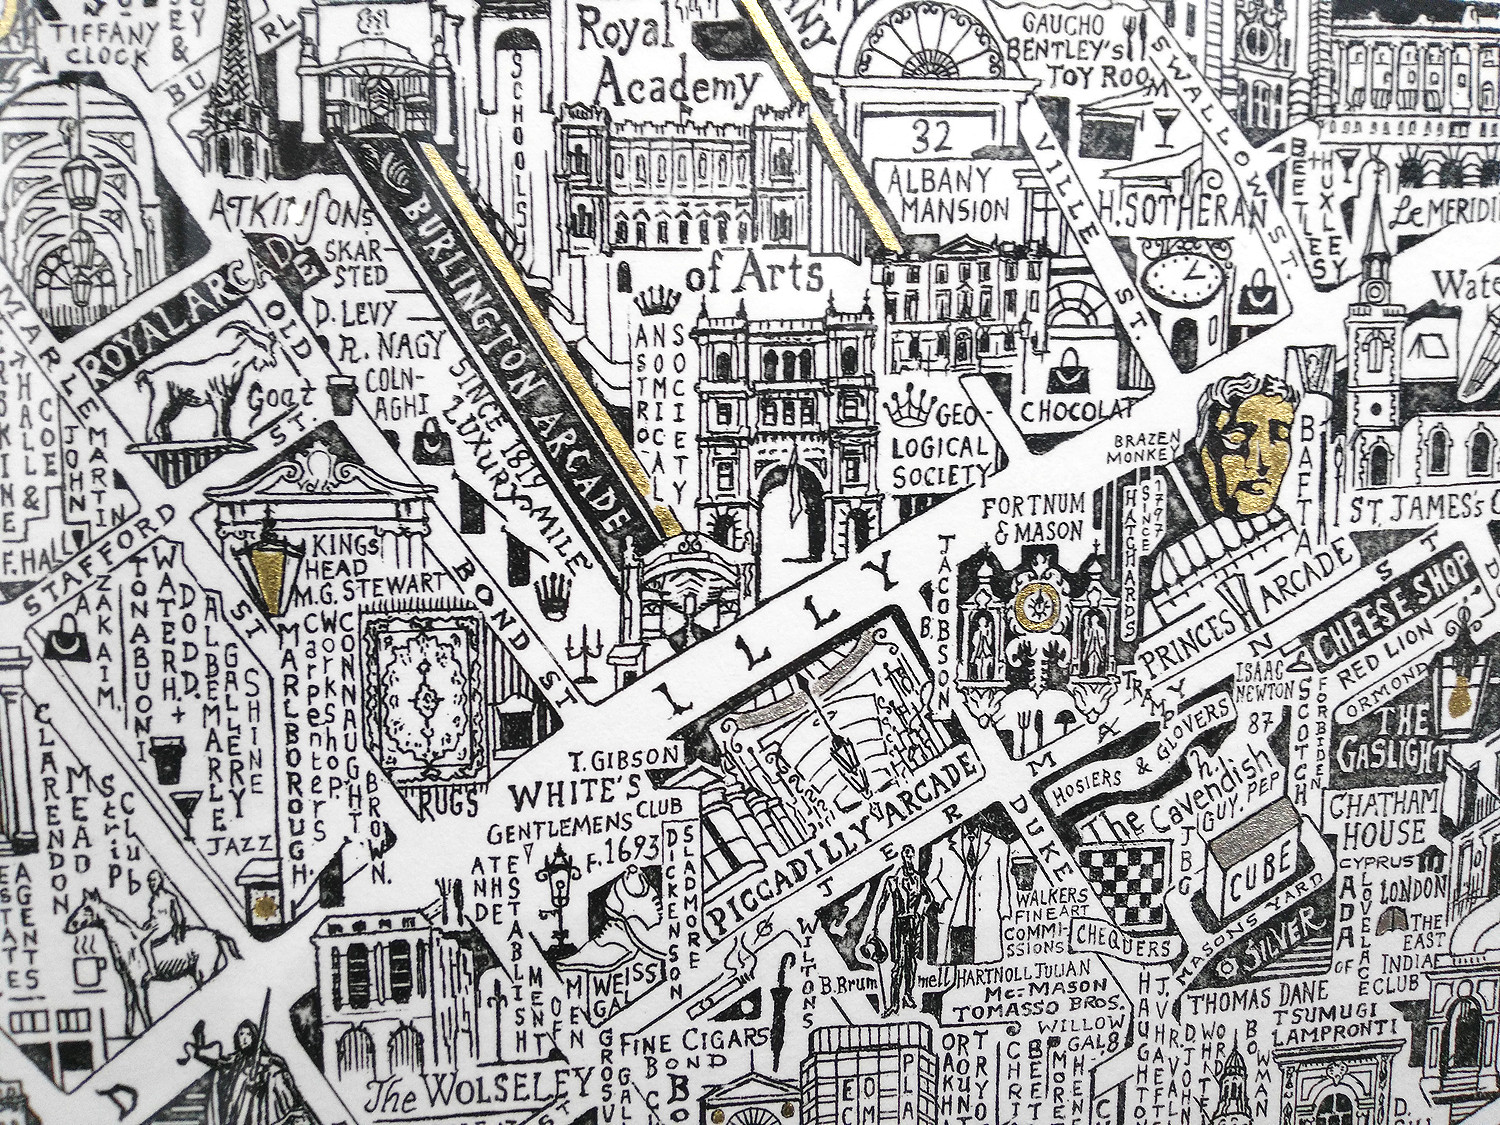 Map Over London.Mayfair St James S Mapping London